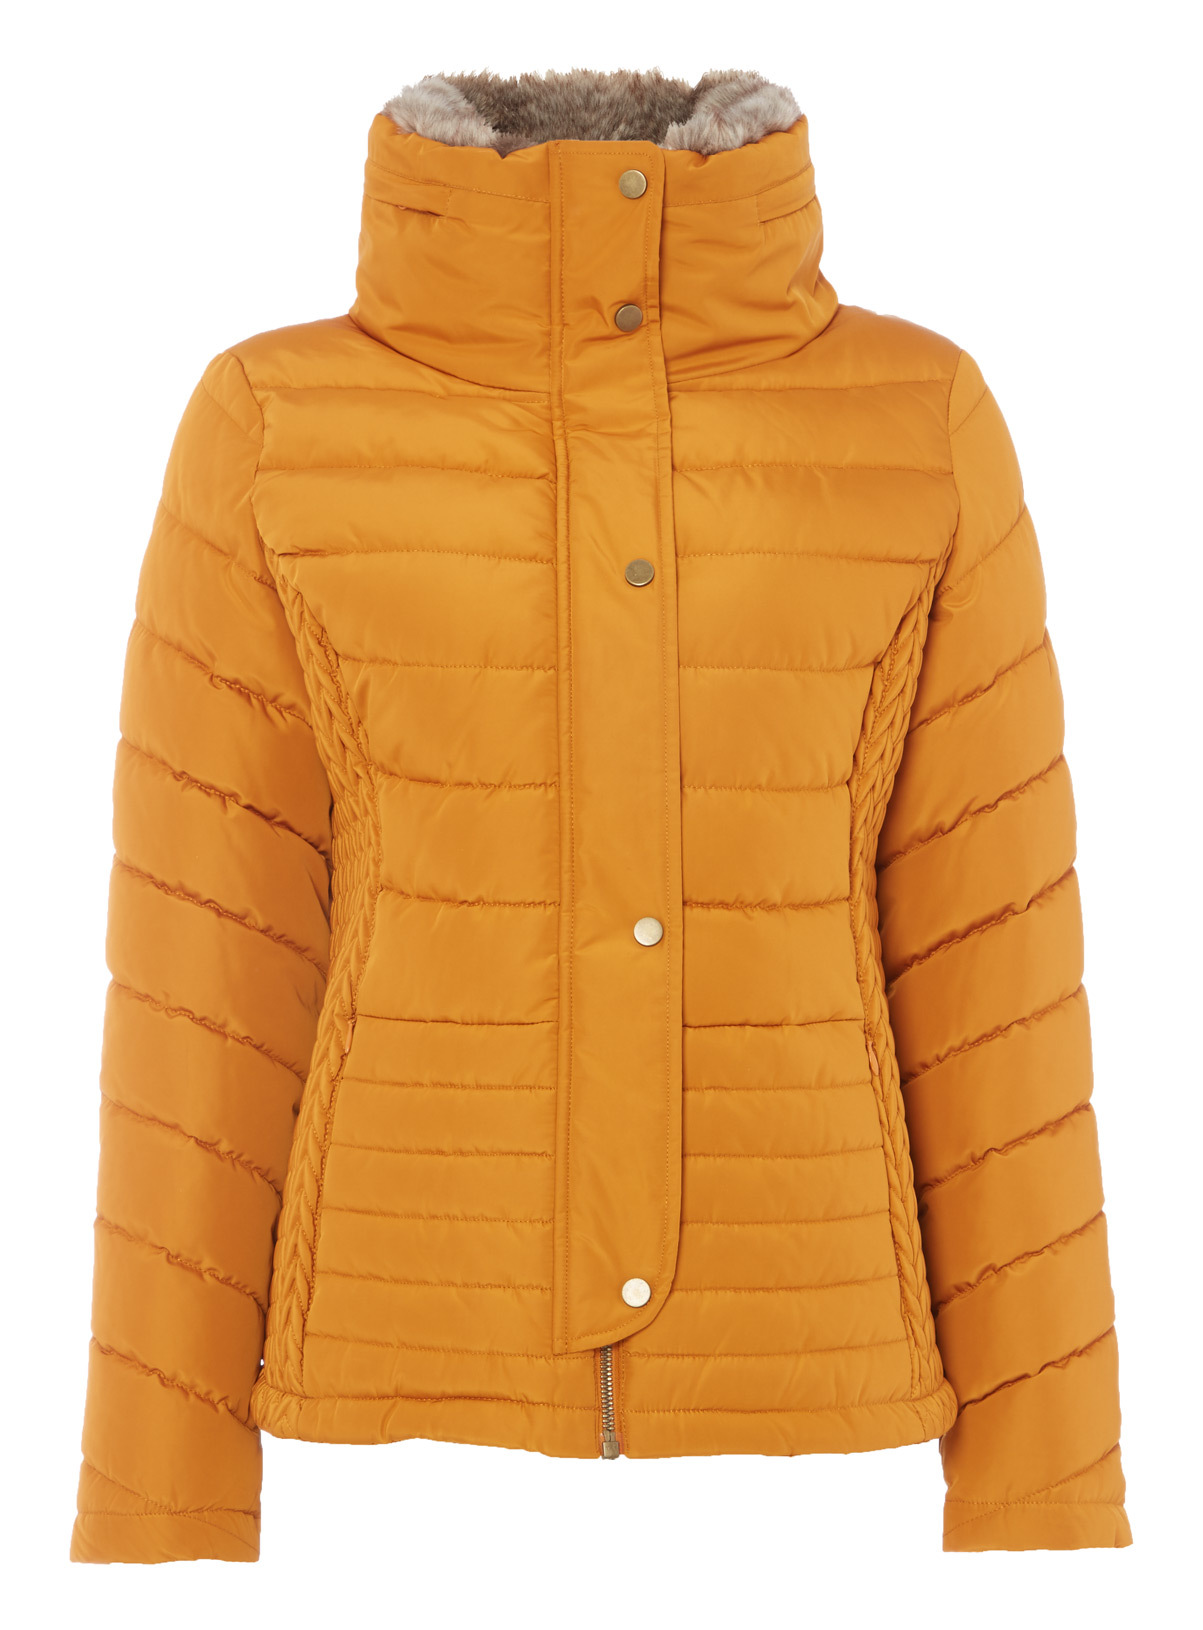 Womens Yellow Quilted Padded Jacket | Tu clothing : quilted padded coat - Adamdwight.com